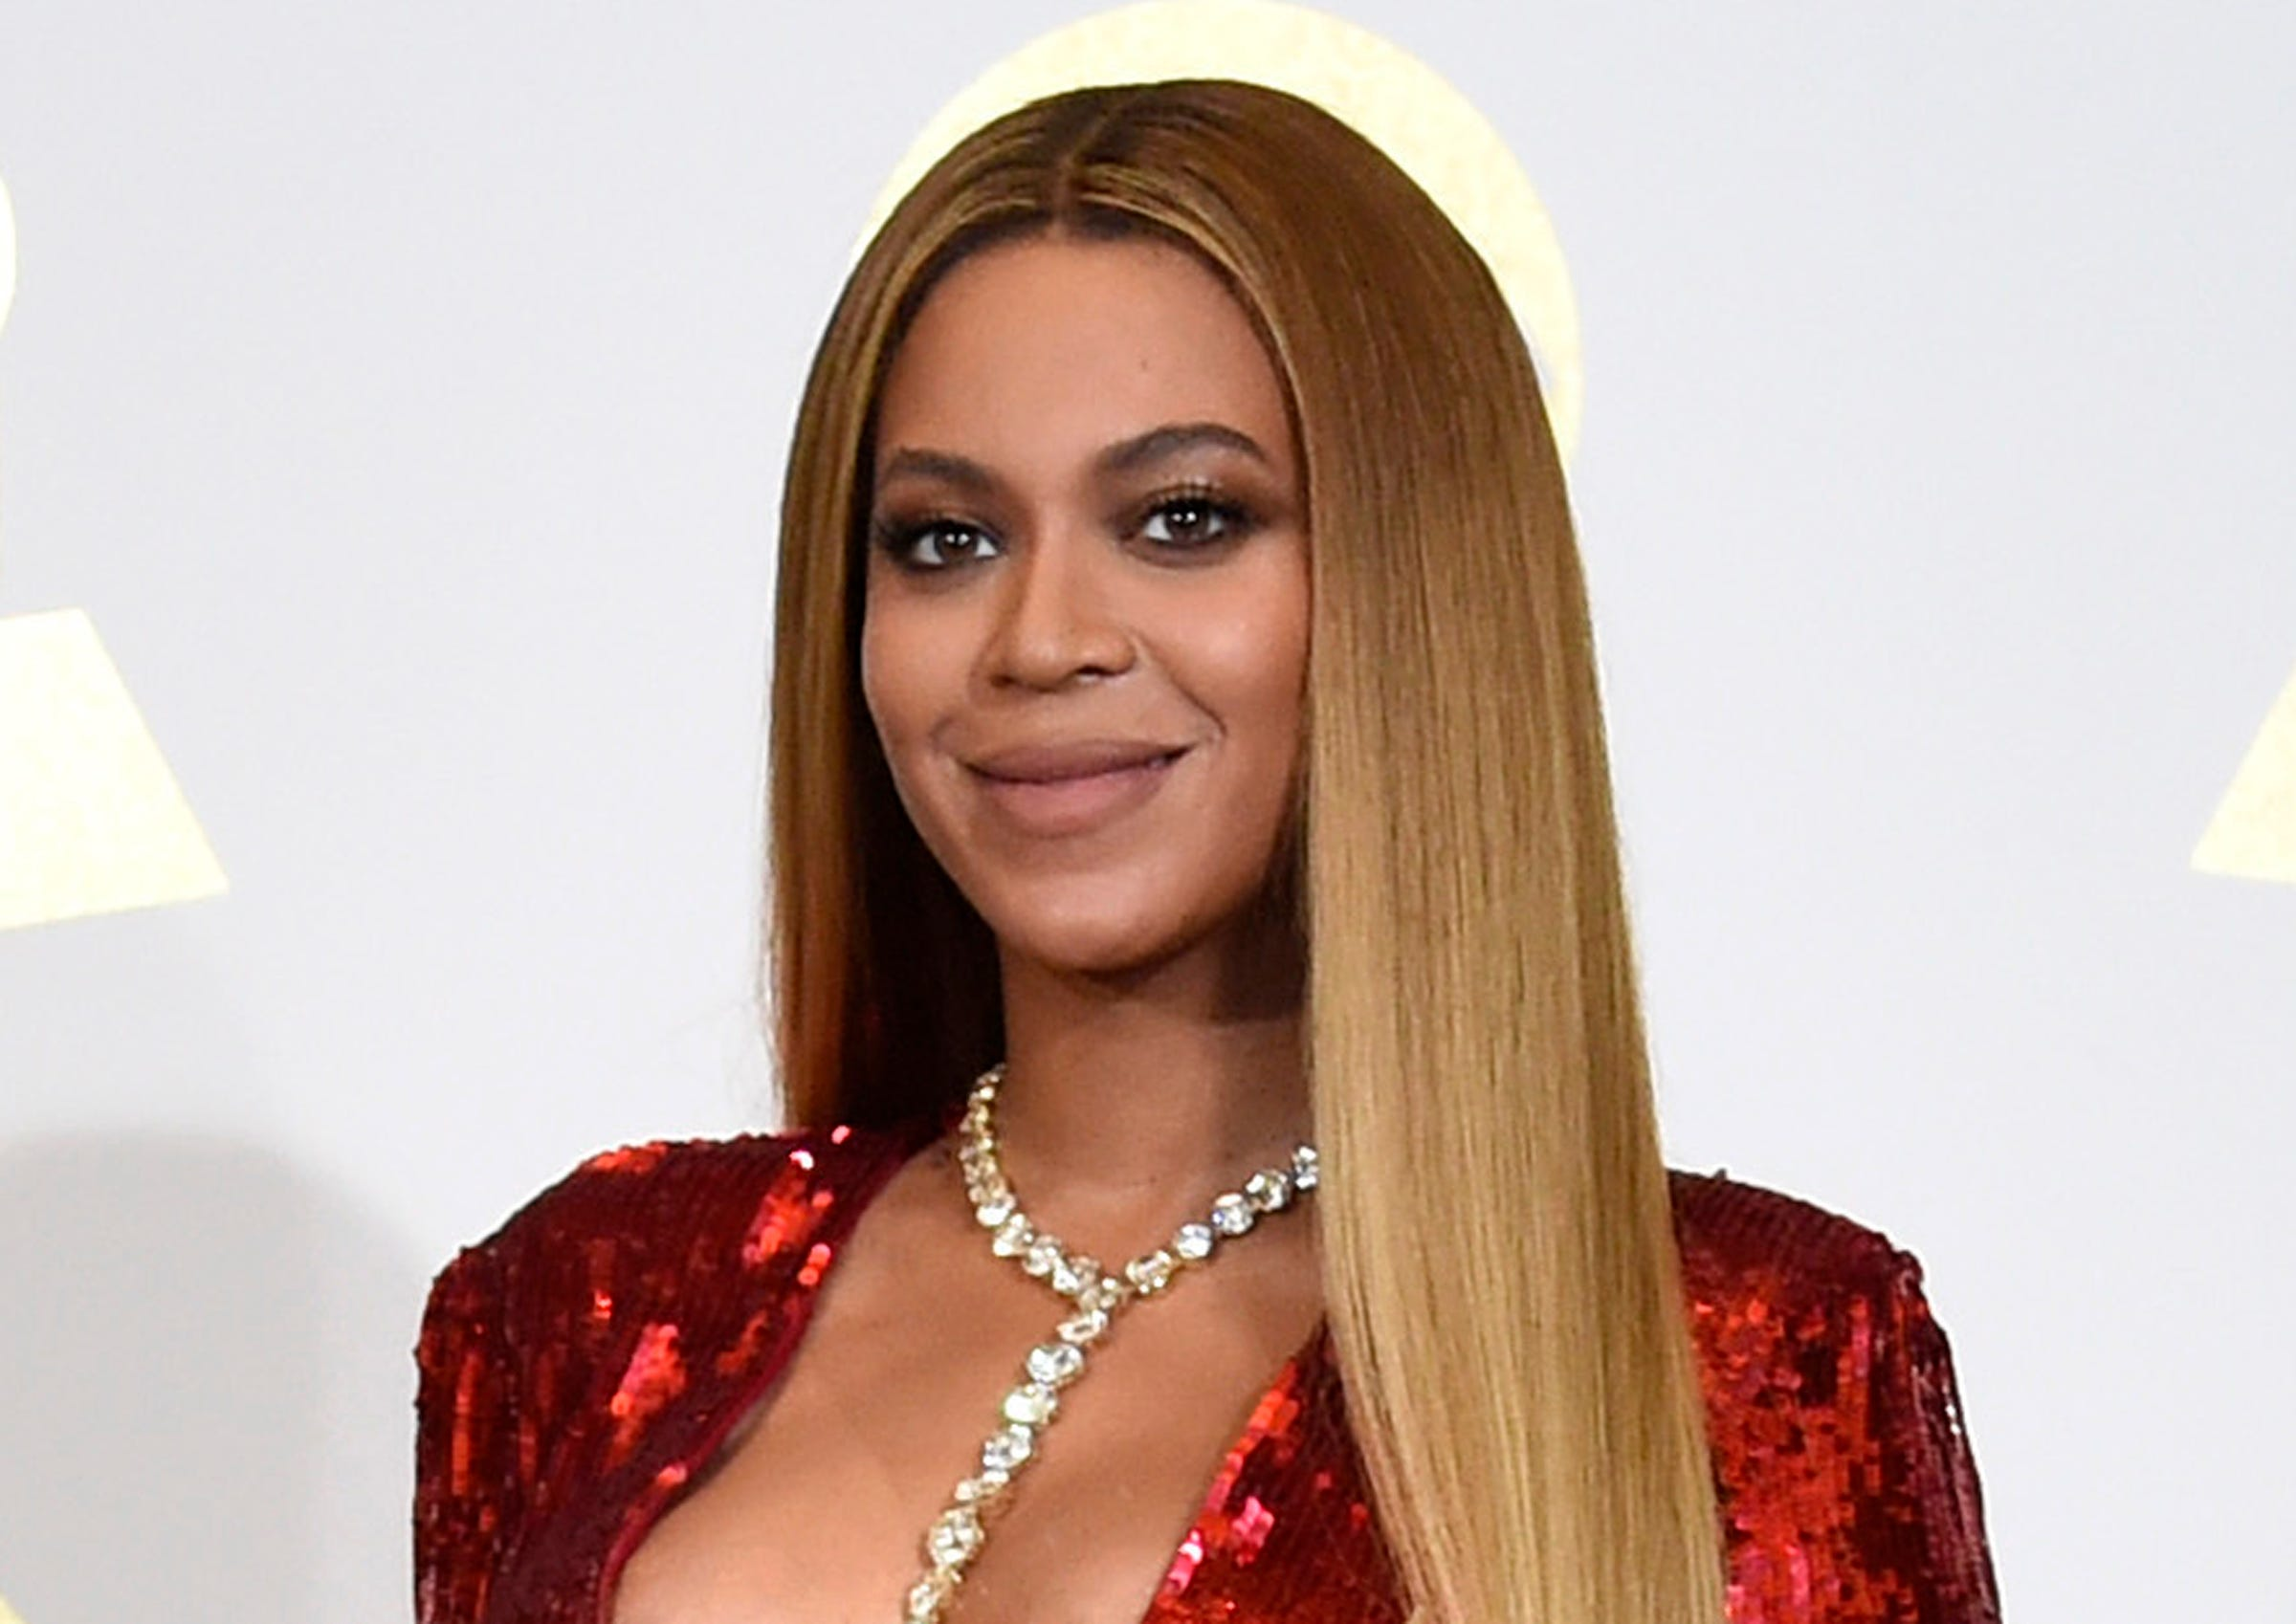 Beyonce endorses Beto O'Rourke to 119 million Instagram followers: 'Every vote counts'